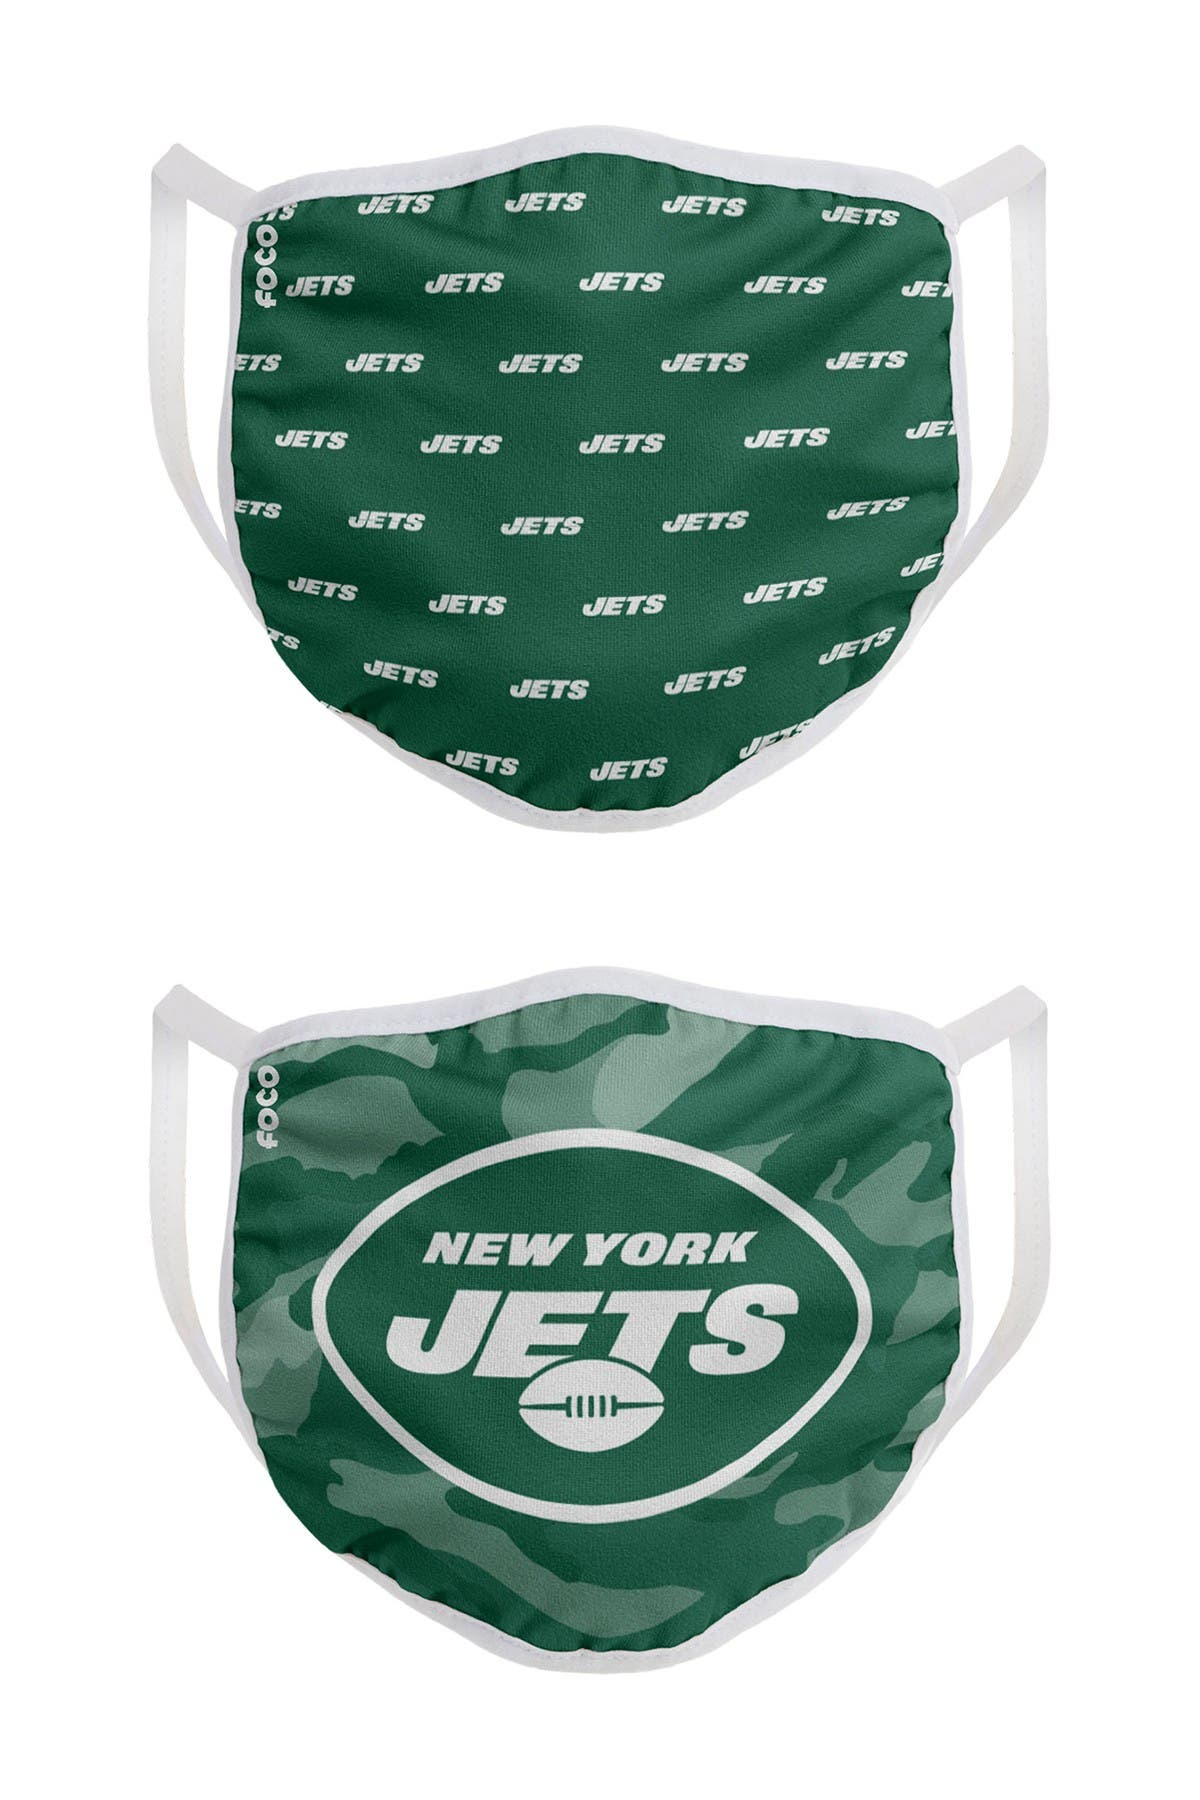 Image of FOCO NFL New York Jets Clutch Printed Face Cover - Pack of 2